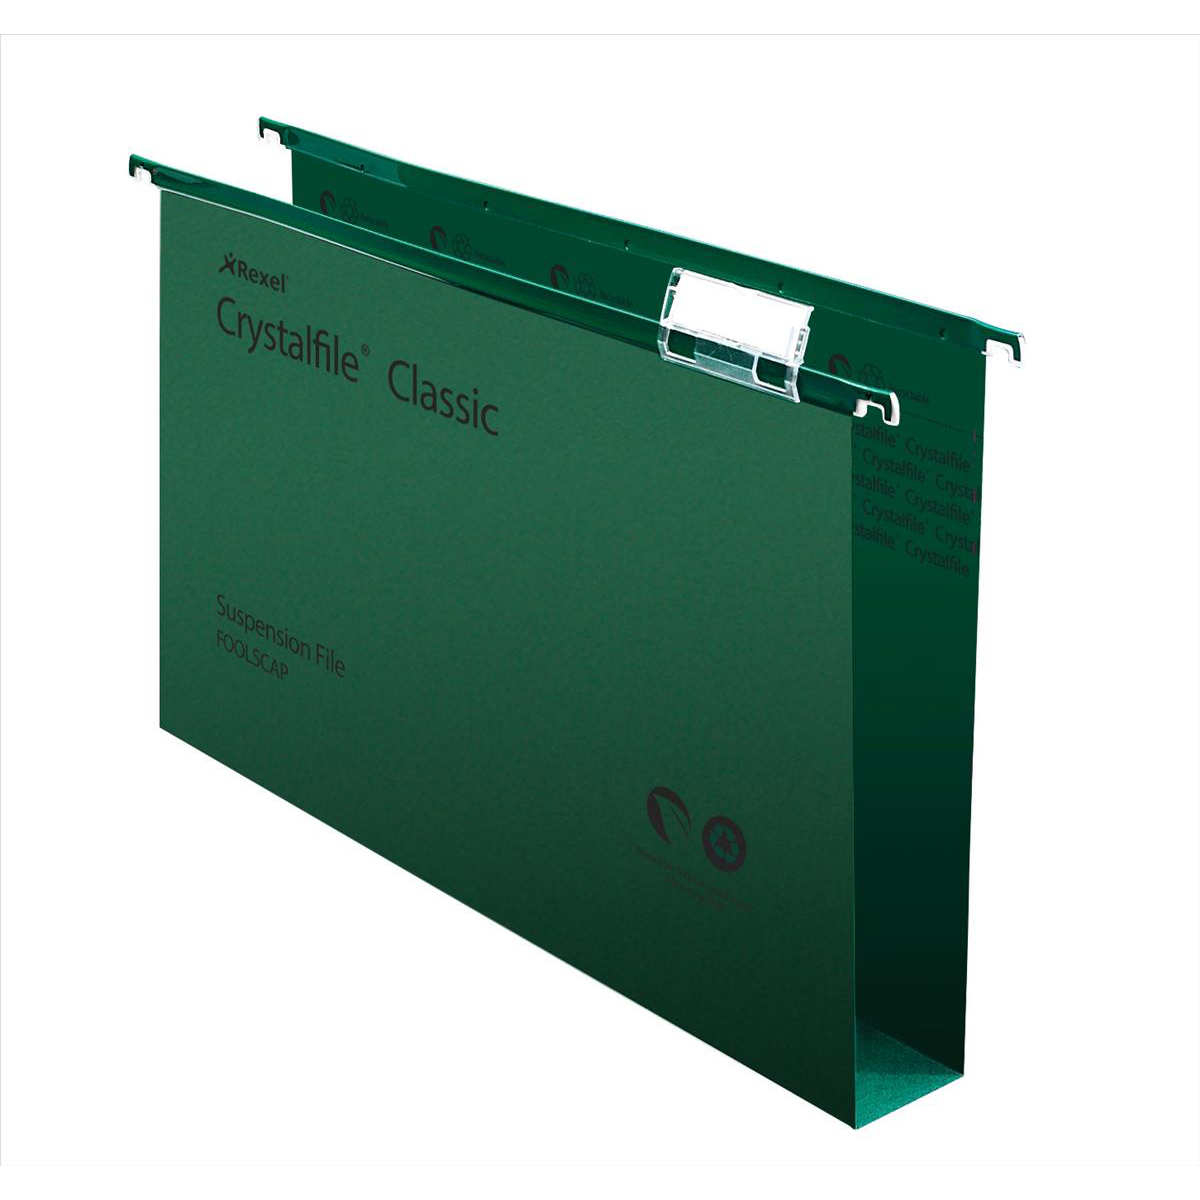 Rexel Crystalfile Classic Suspension File Wide-base 50mm 230gsm Foolscap Green Ref 71750 Pack 50